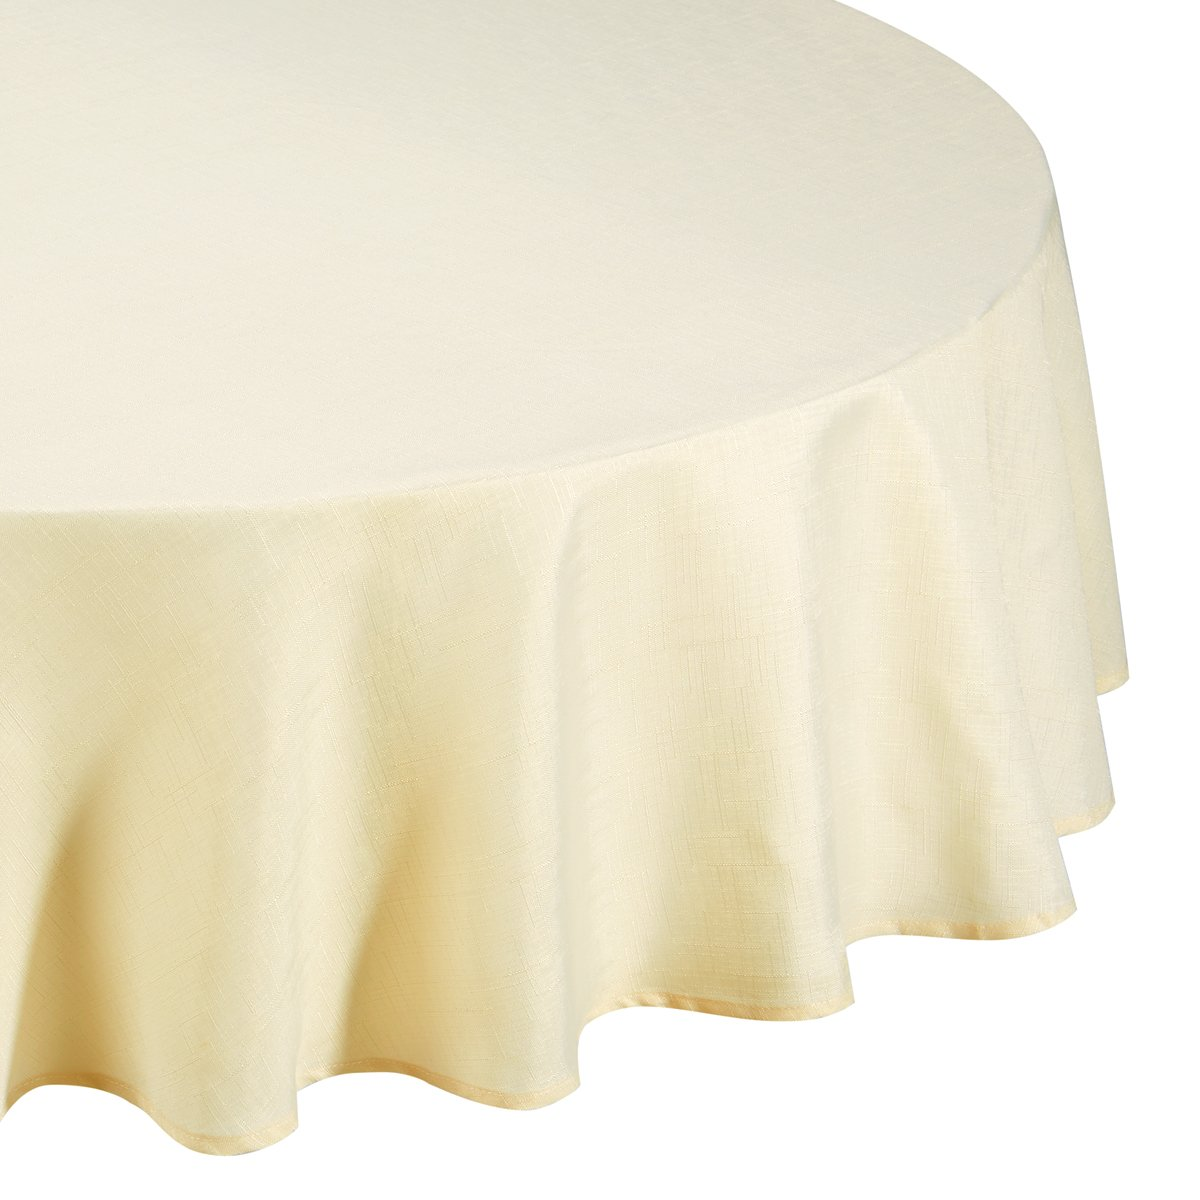 gray linen elegant tablecloth cloths living mode table positano products tablecloths designer